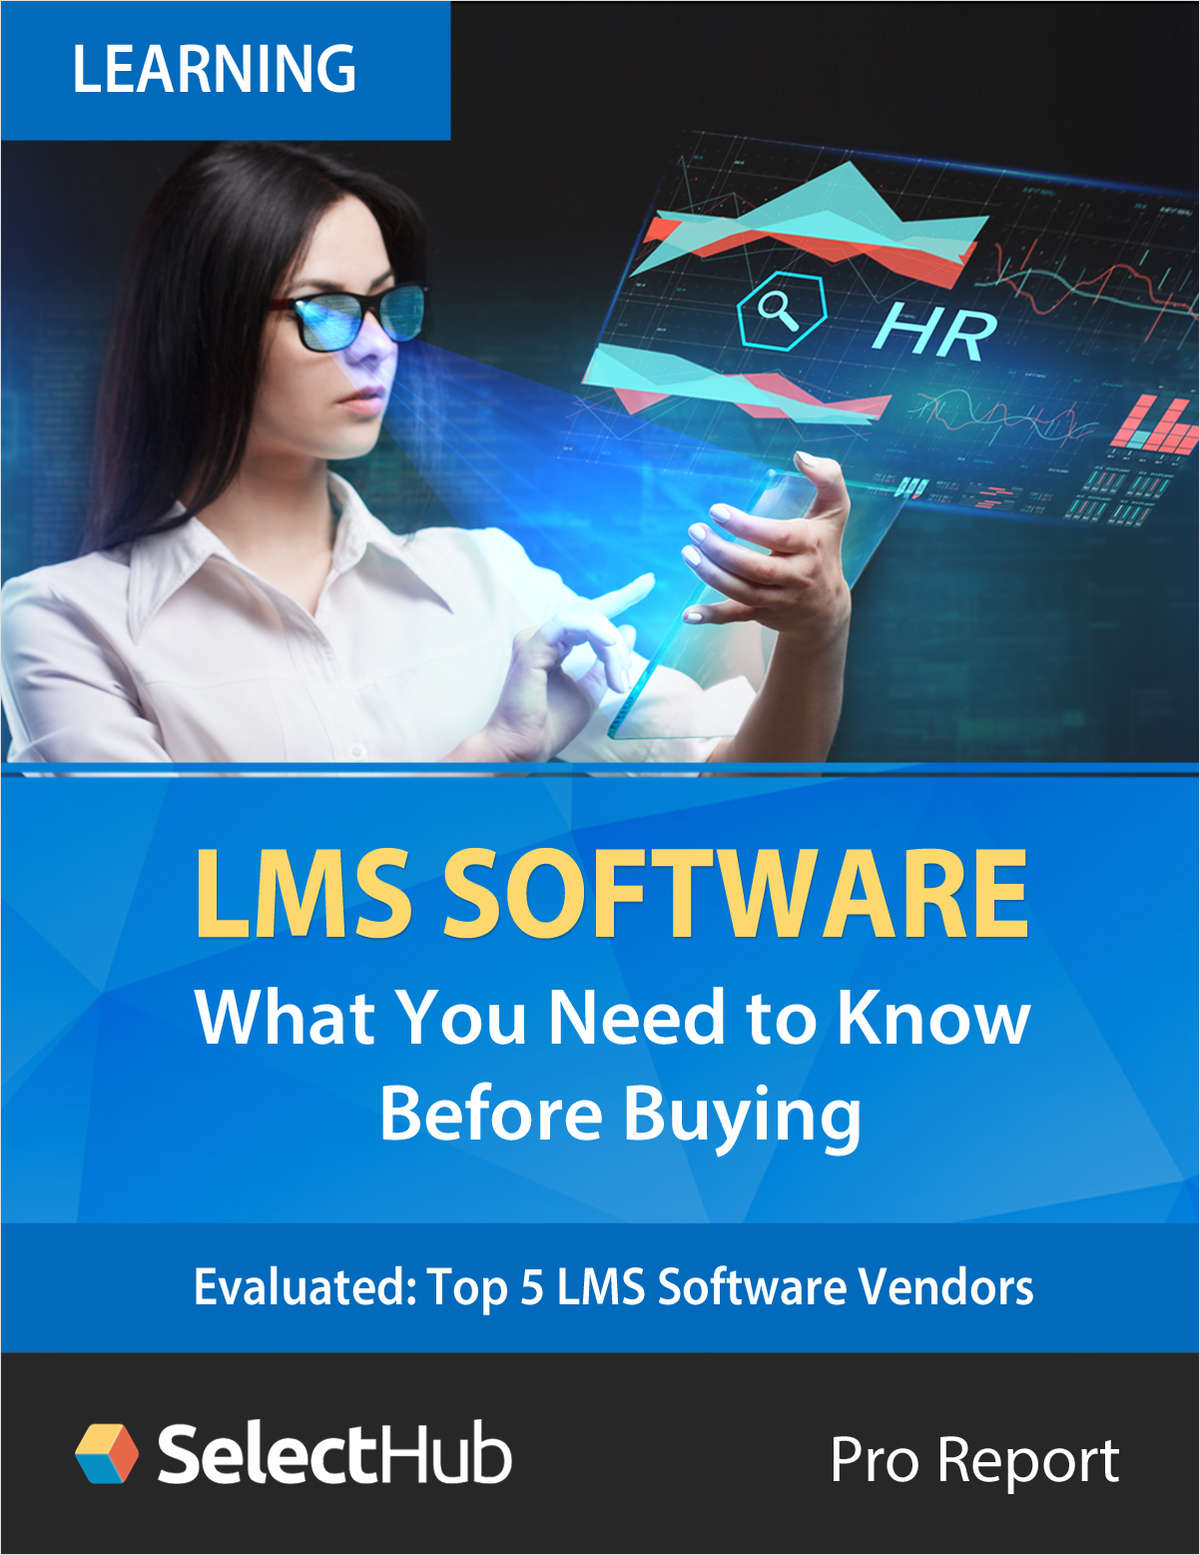 LMS Software: What You Need to Know Before Buying